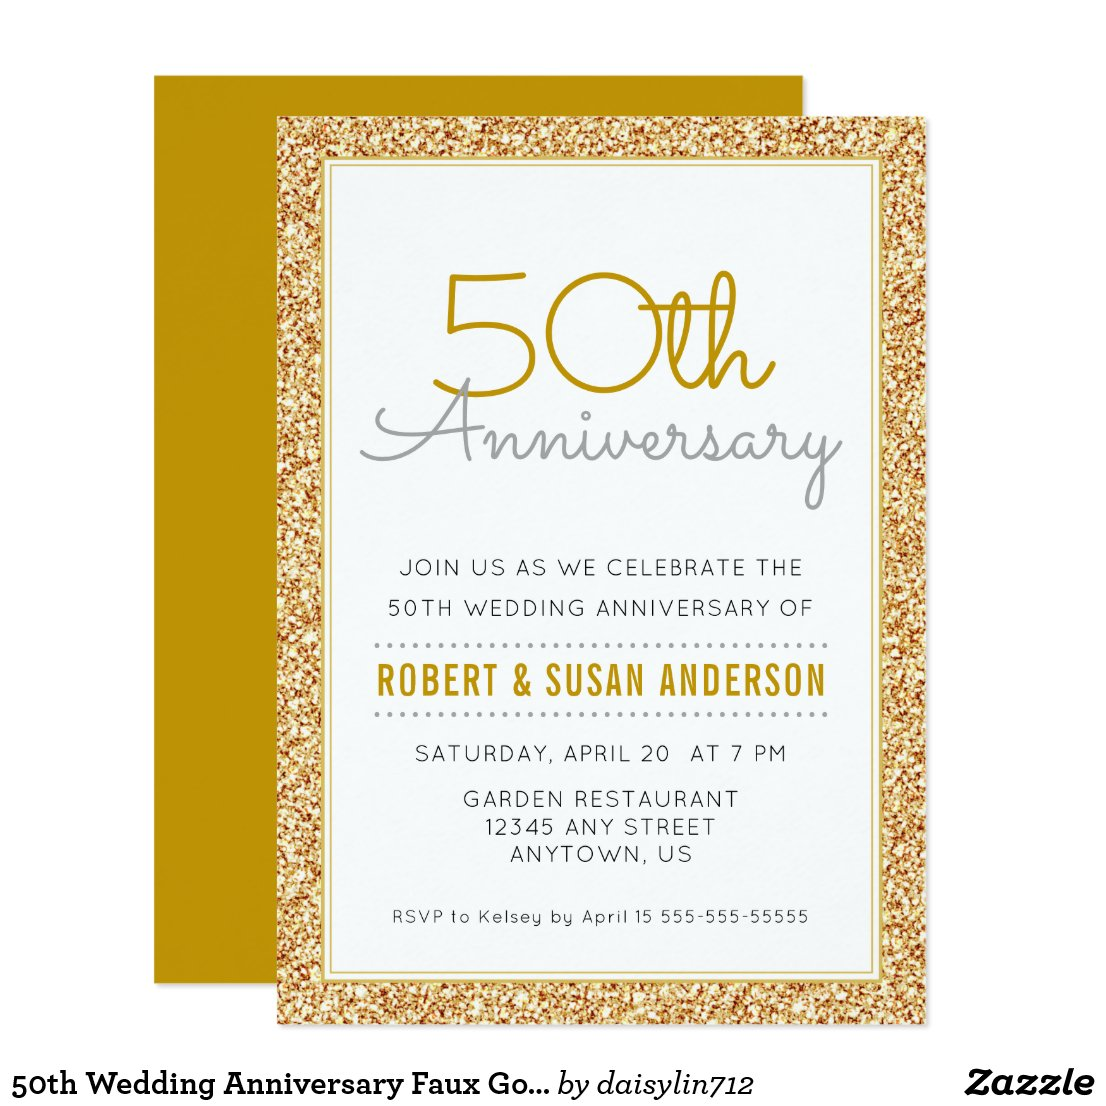 50th Wedding Anniversary Faux Gold Glitter Card